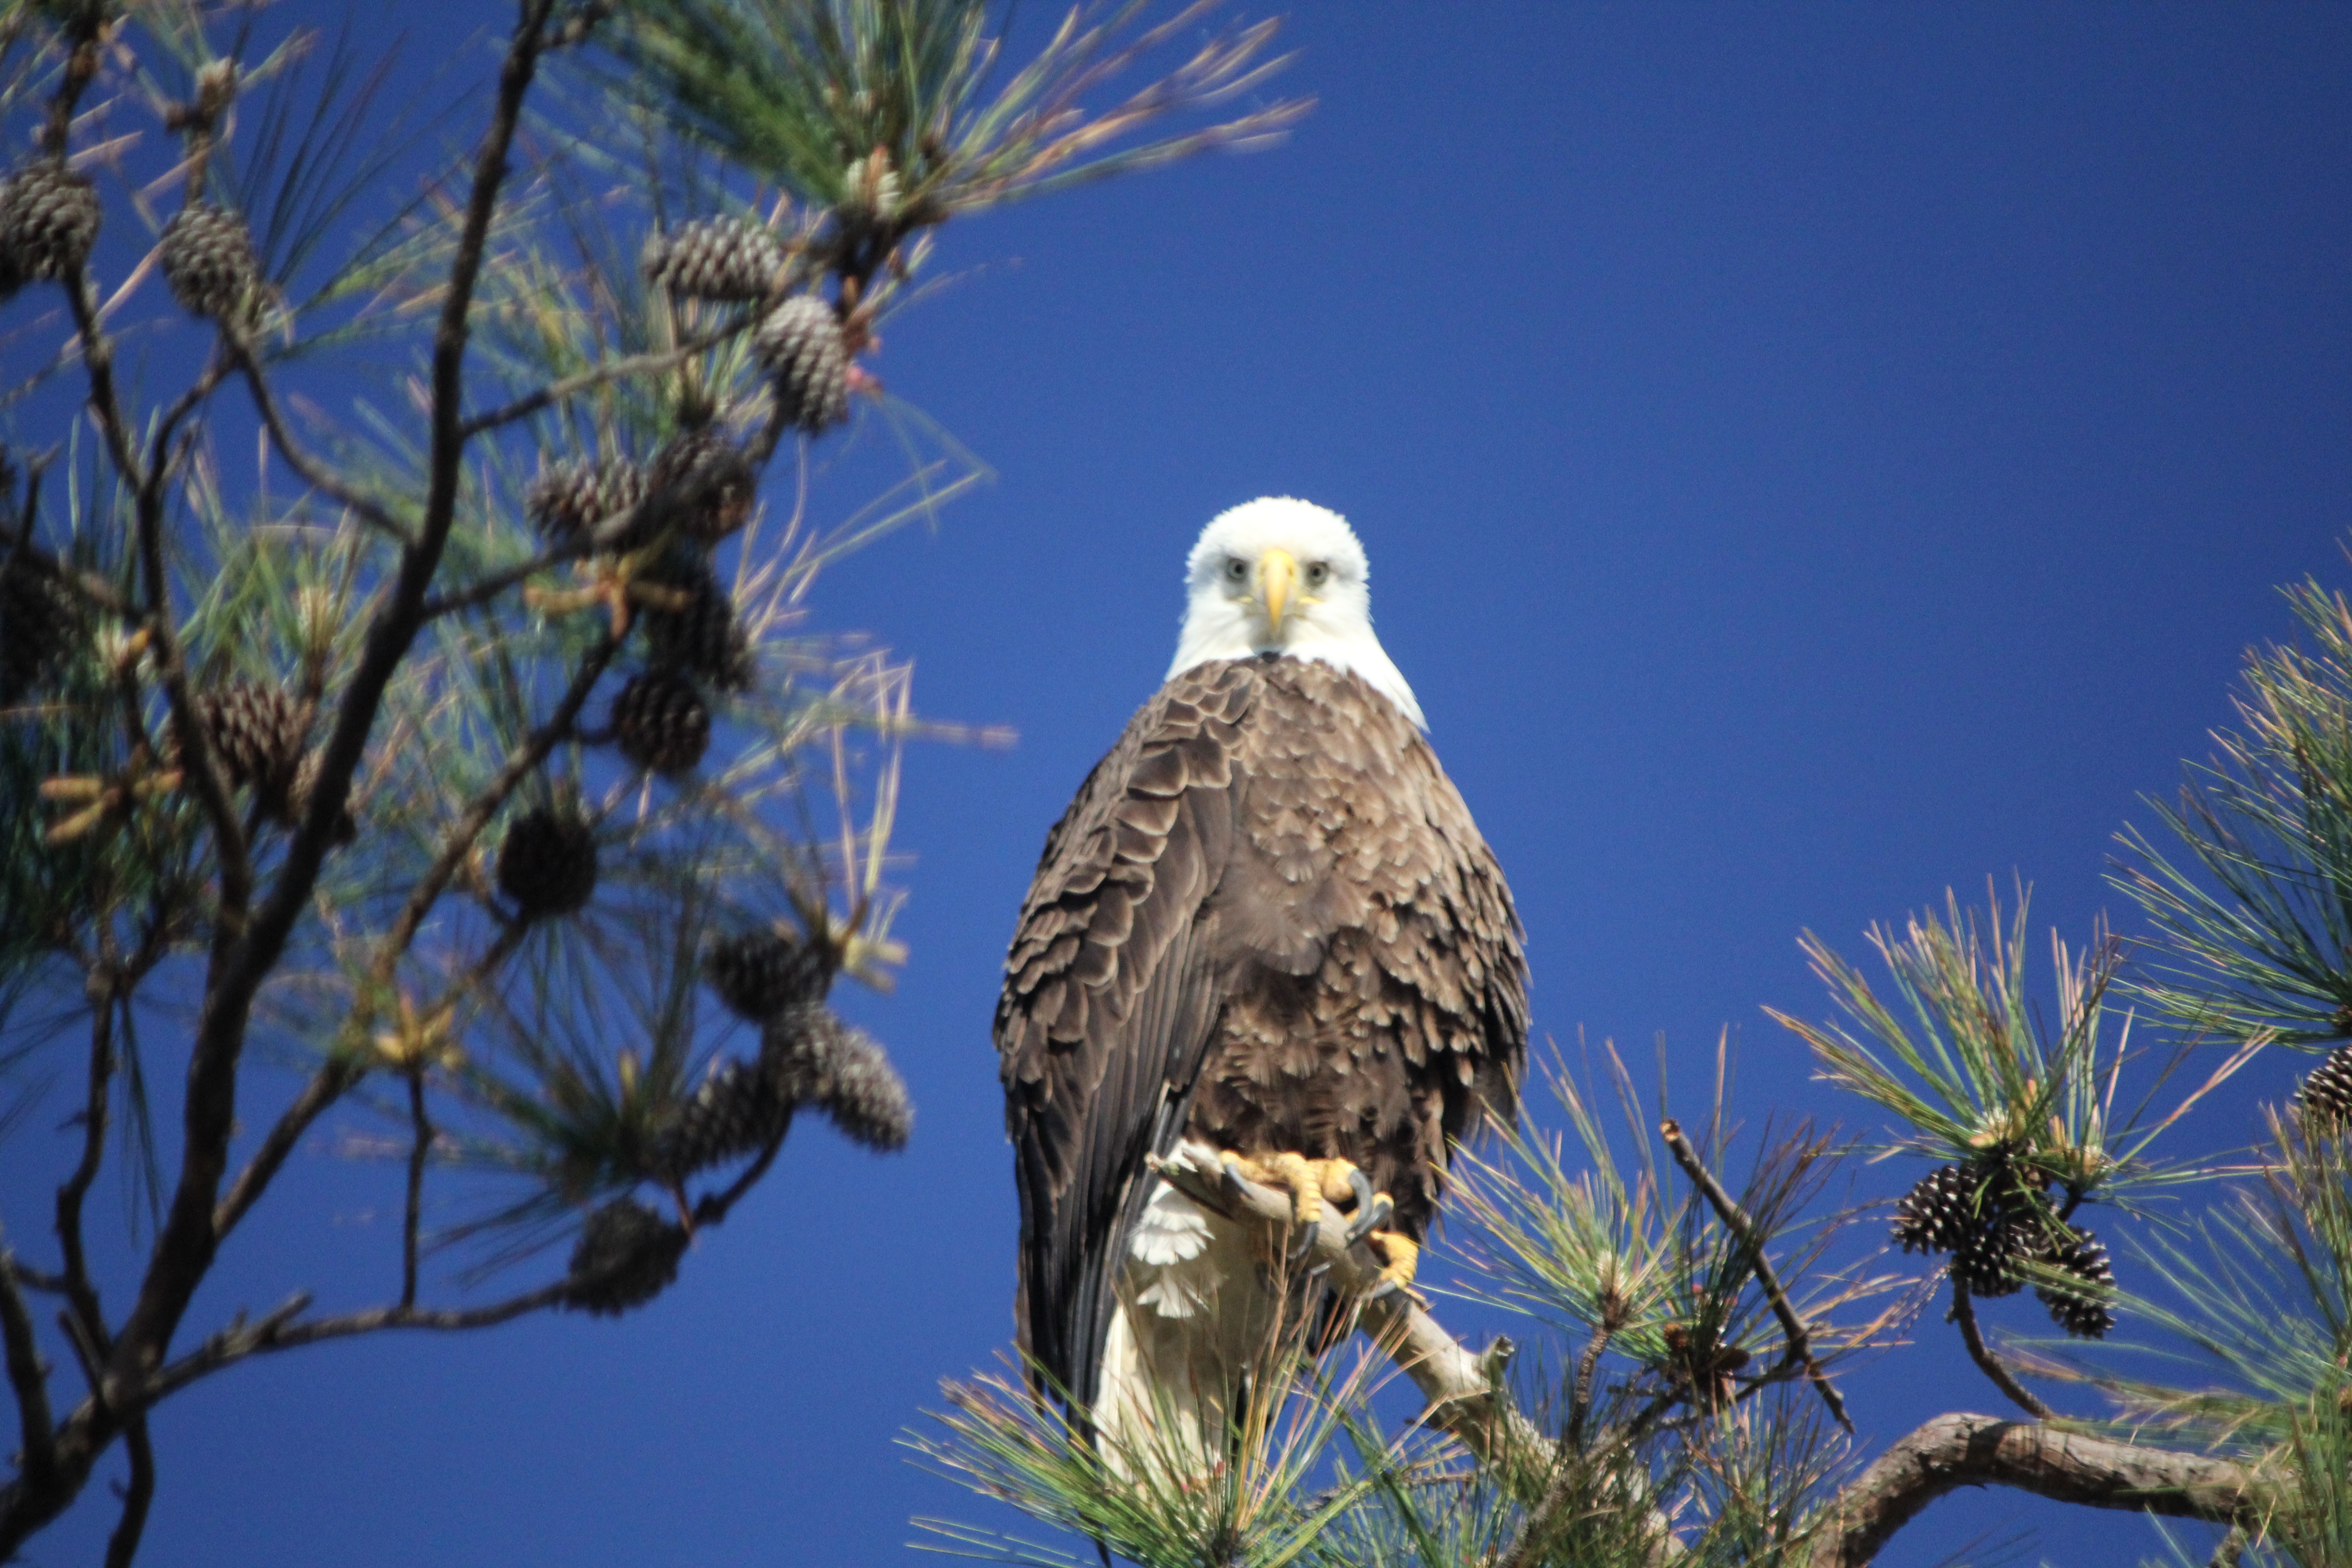 Bald eagle up close and personal at Blackwater National Wildlife refuge